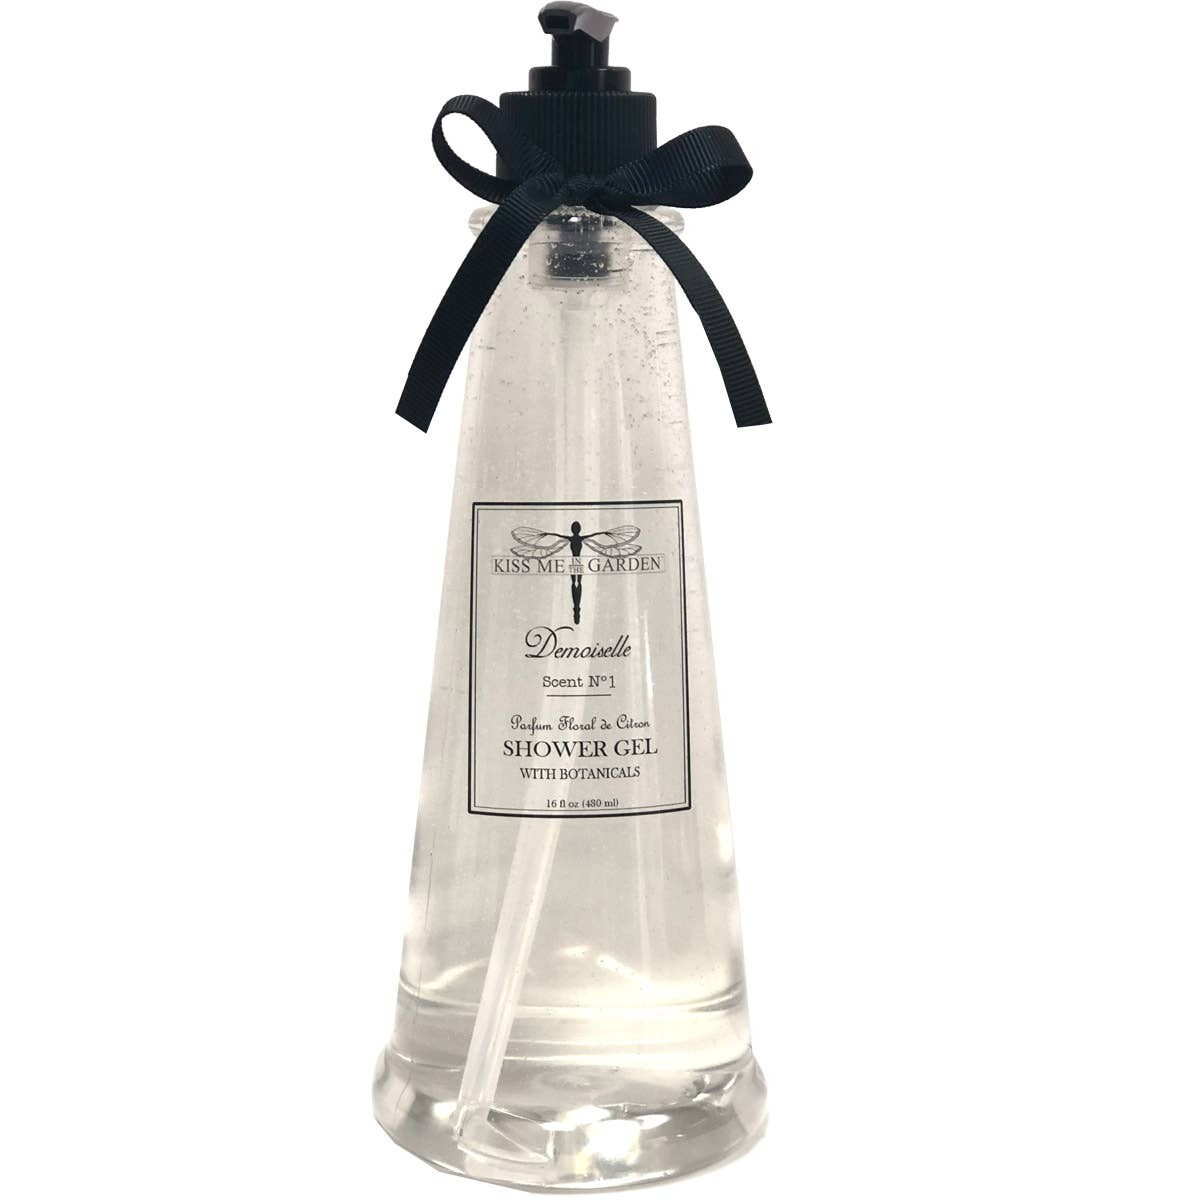 16 oz Demoiselle Shower Gel